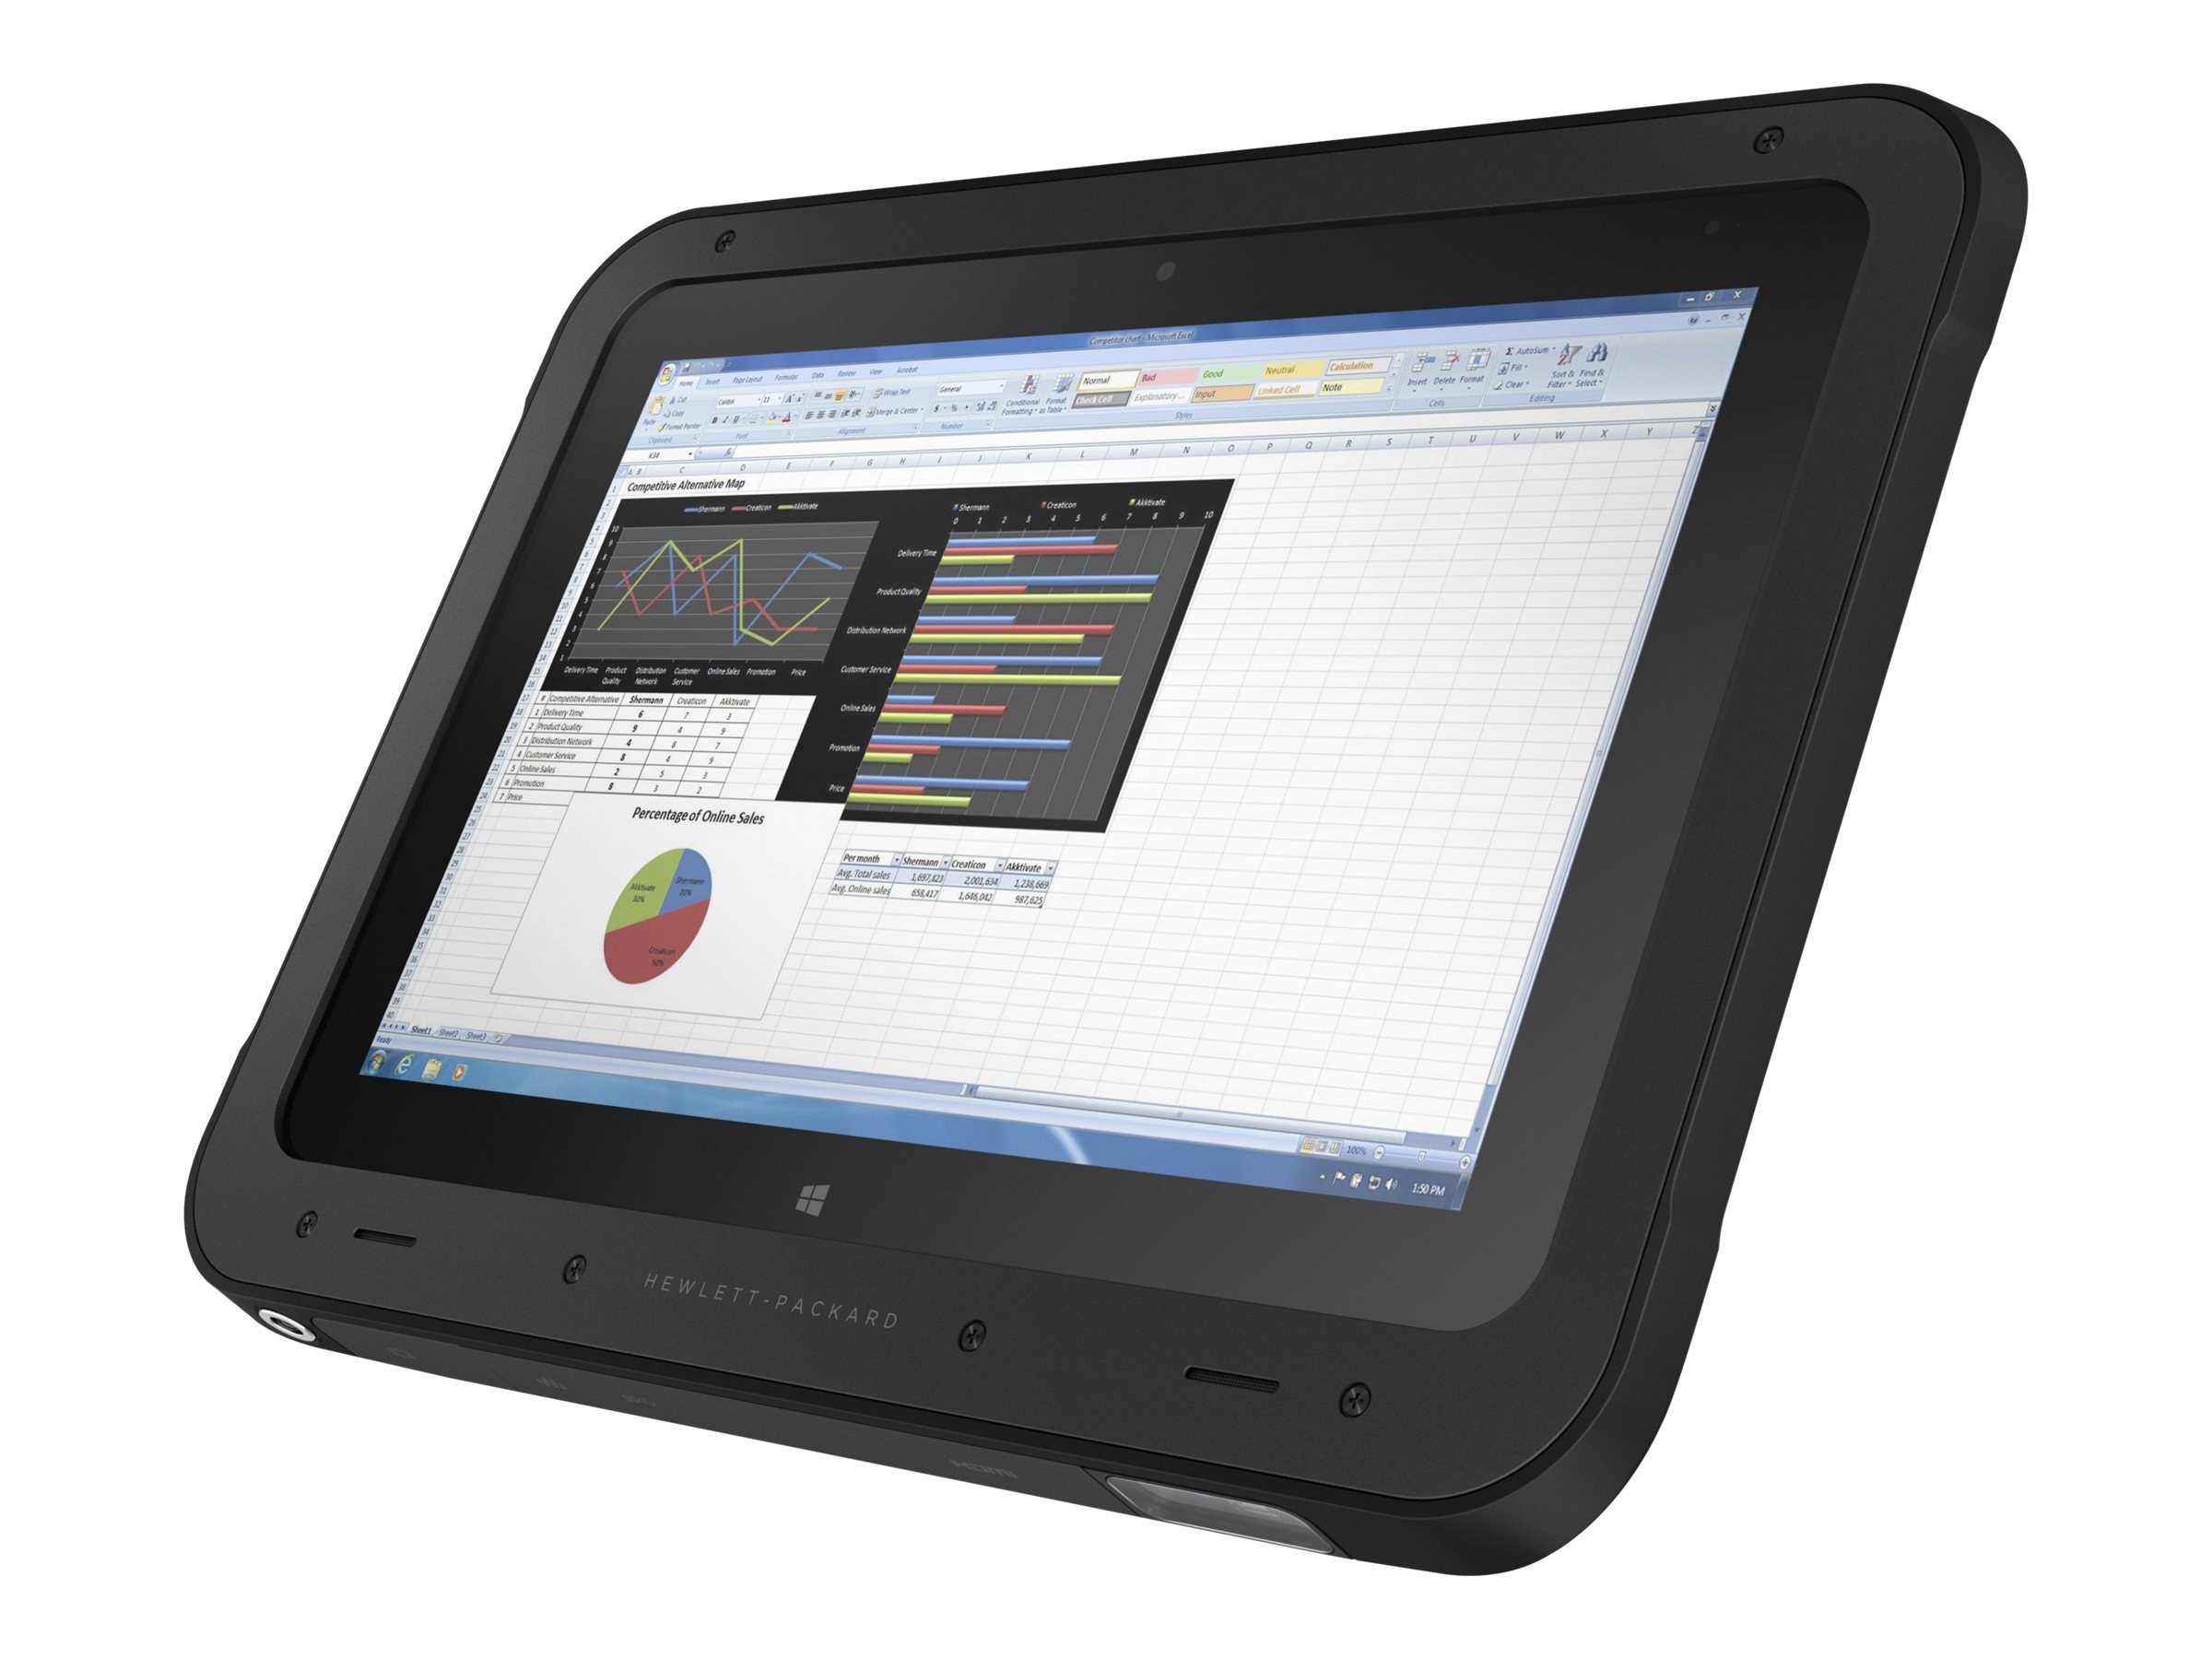 HP Rugged ElitePad 1000 G2 1.59GHz processor Windows 8.1 Pro 64-bit